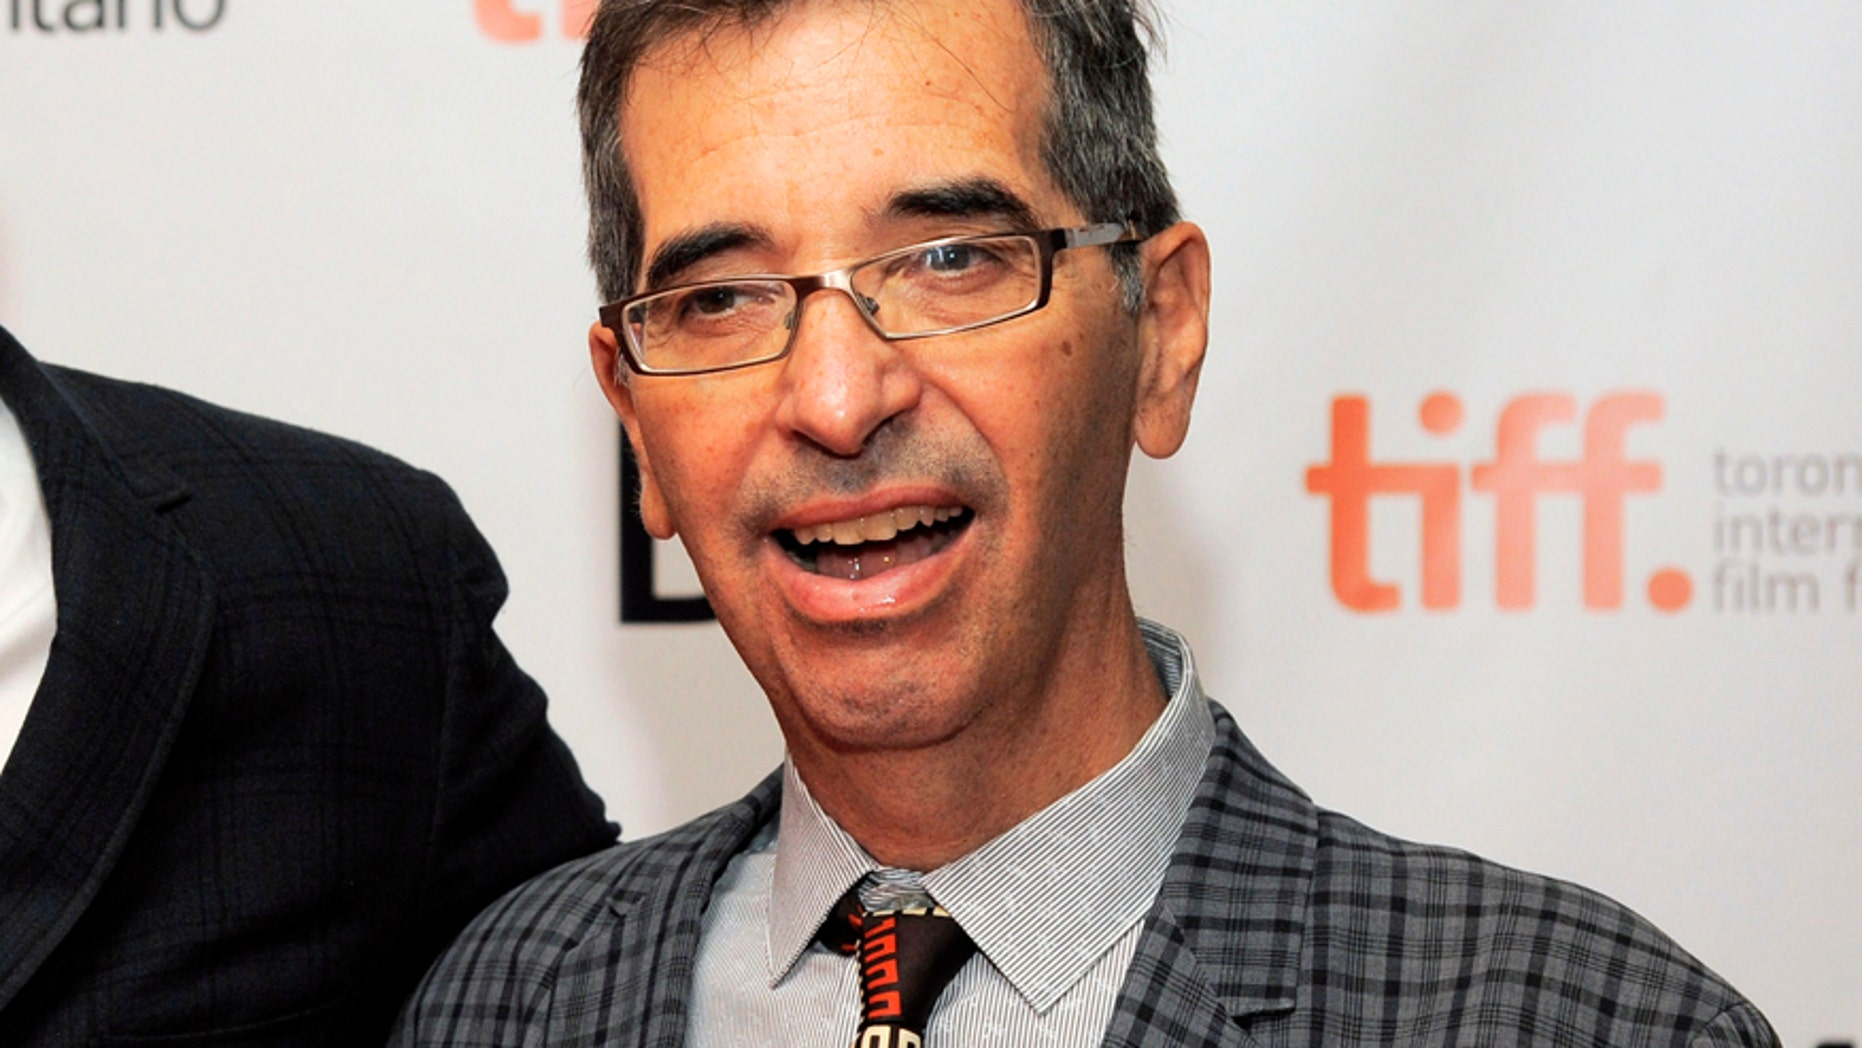 """FILE - In this Sept. 6, 2013 file photo, director Richard Glatzer poses at the premiere of the film """"The Last of Robin Hood"""" at the Toronto International Film Festival at the Isabel Bader Theater in Toronto."""